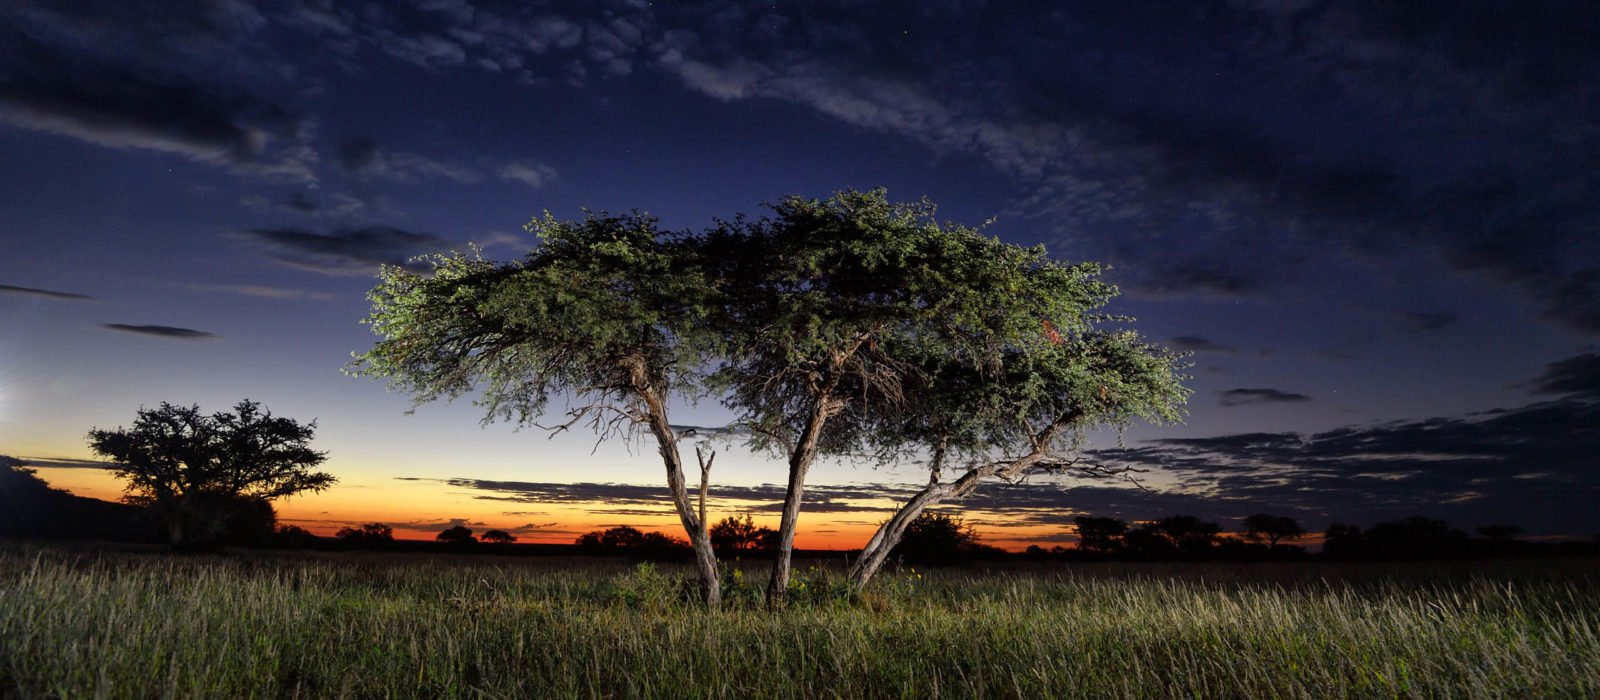 shepards-tree-tswalu-kalahari